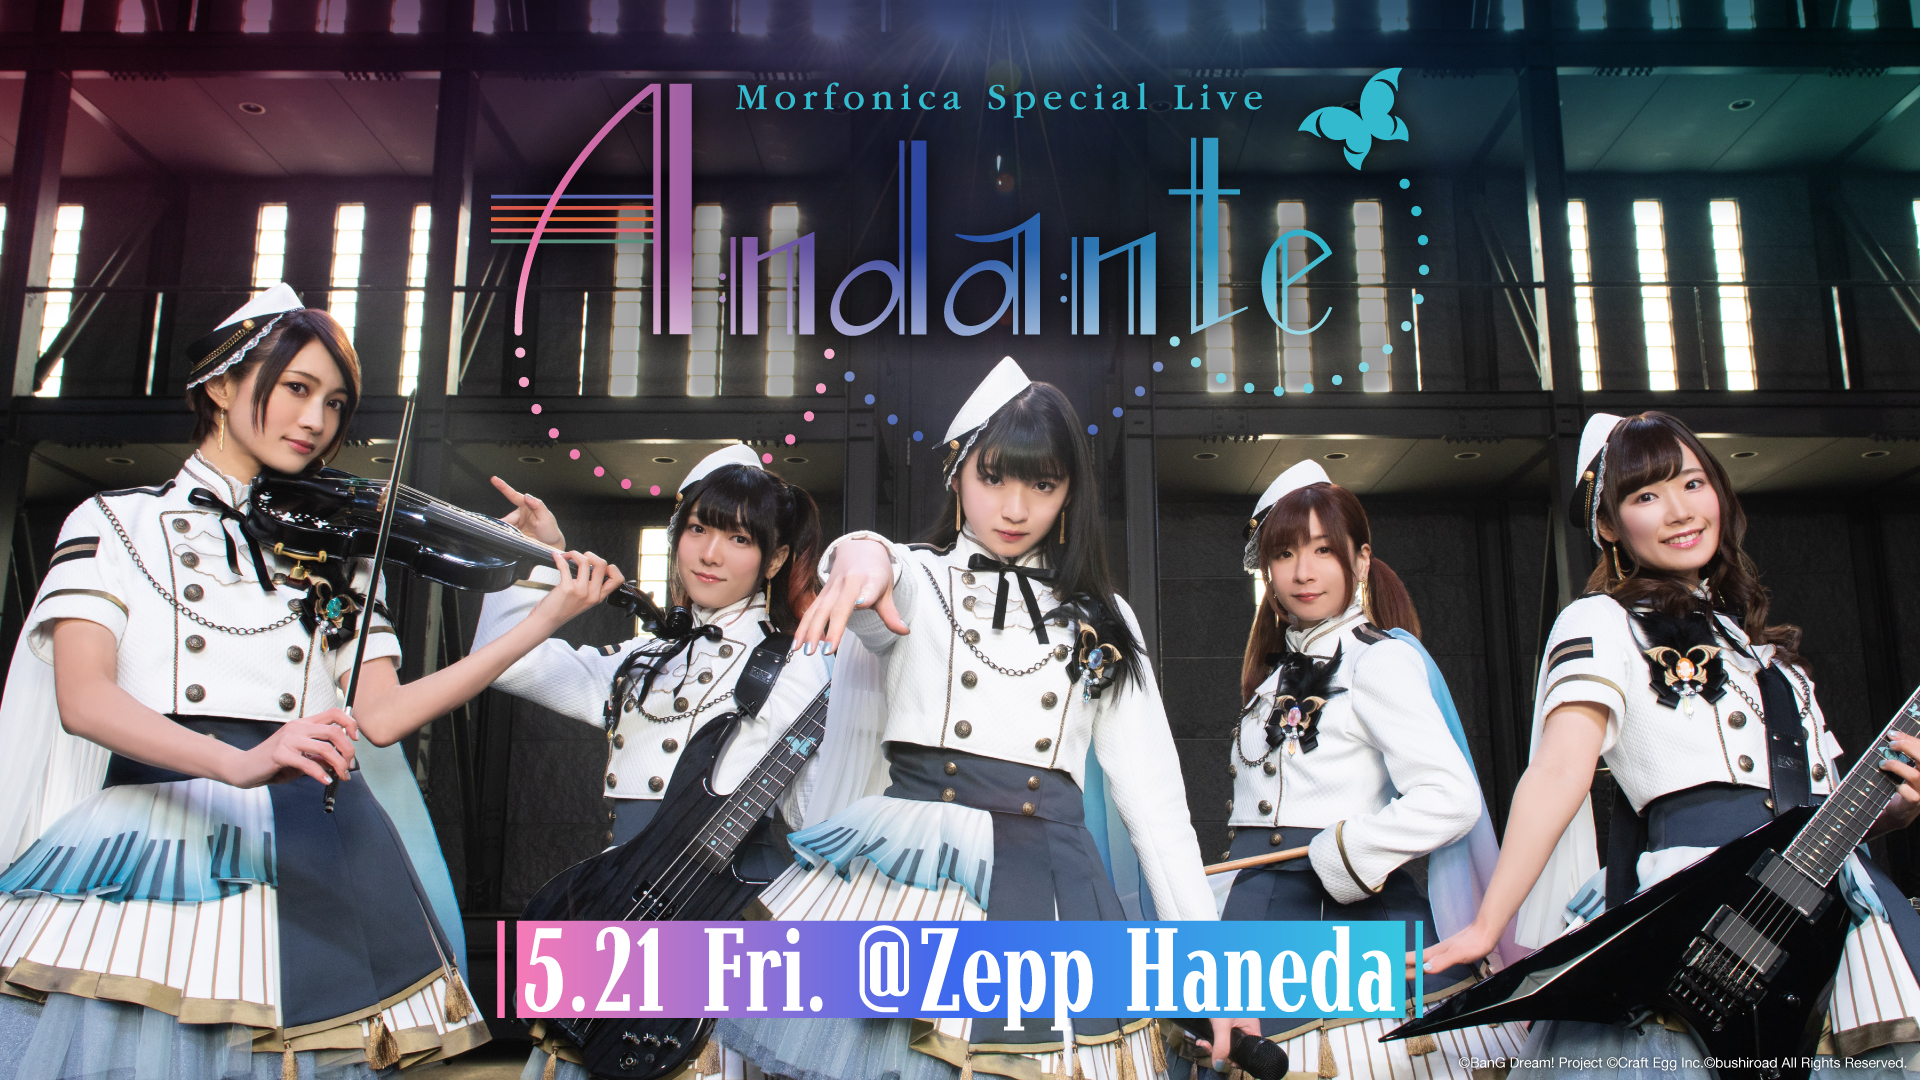 Morfonica Special Live「Andante」の画像